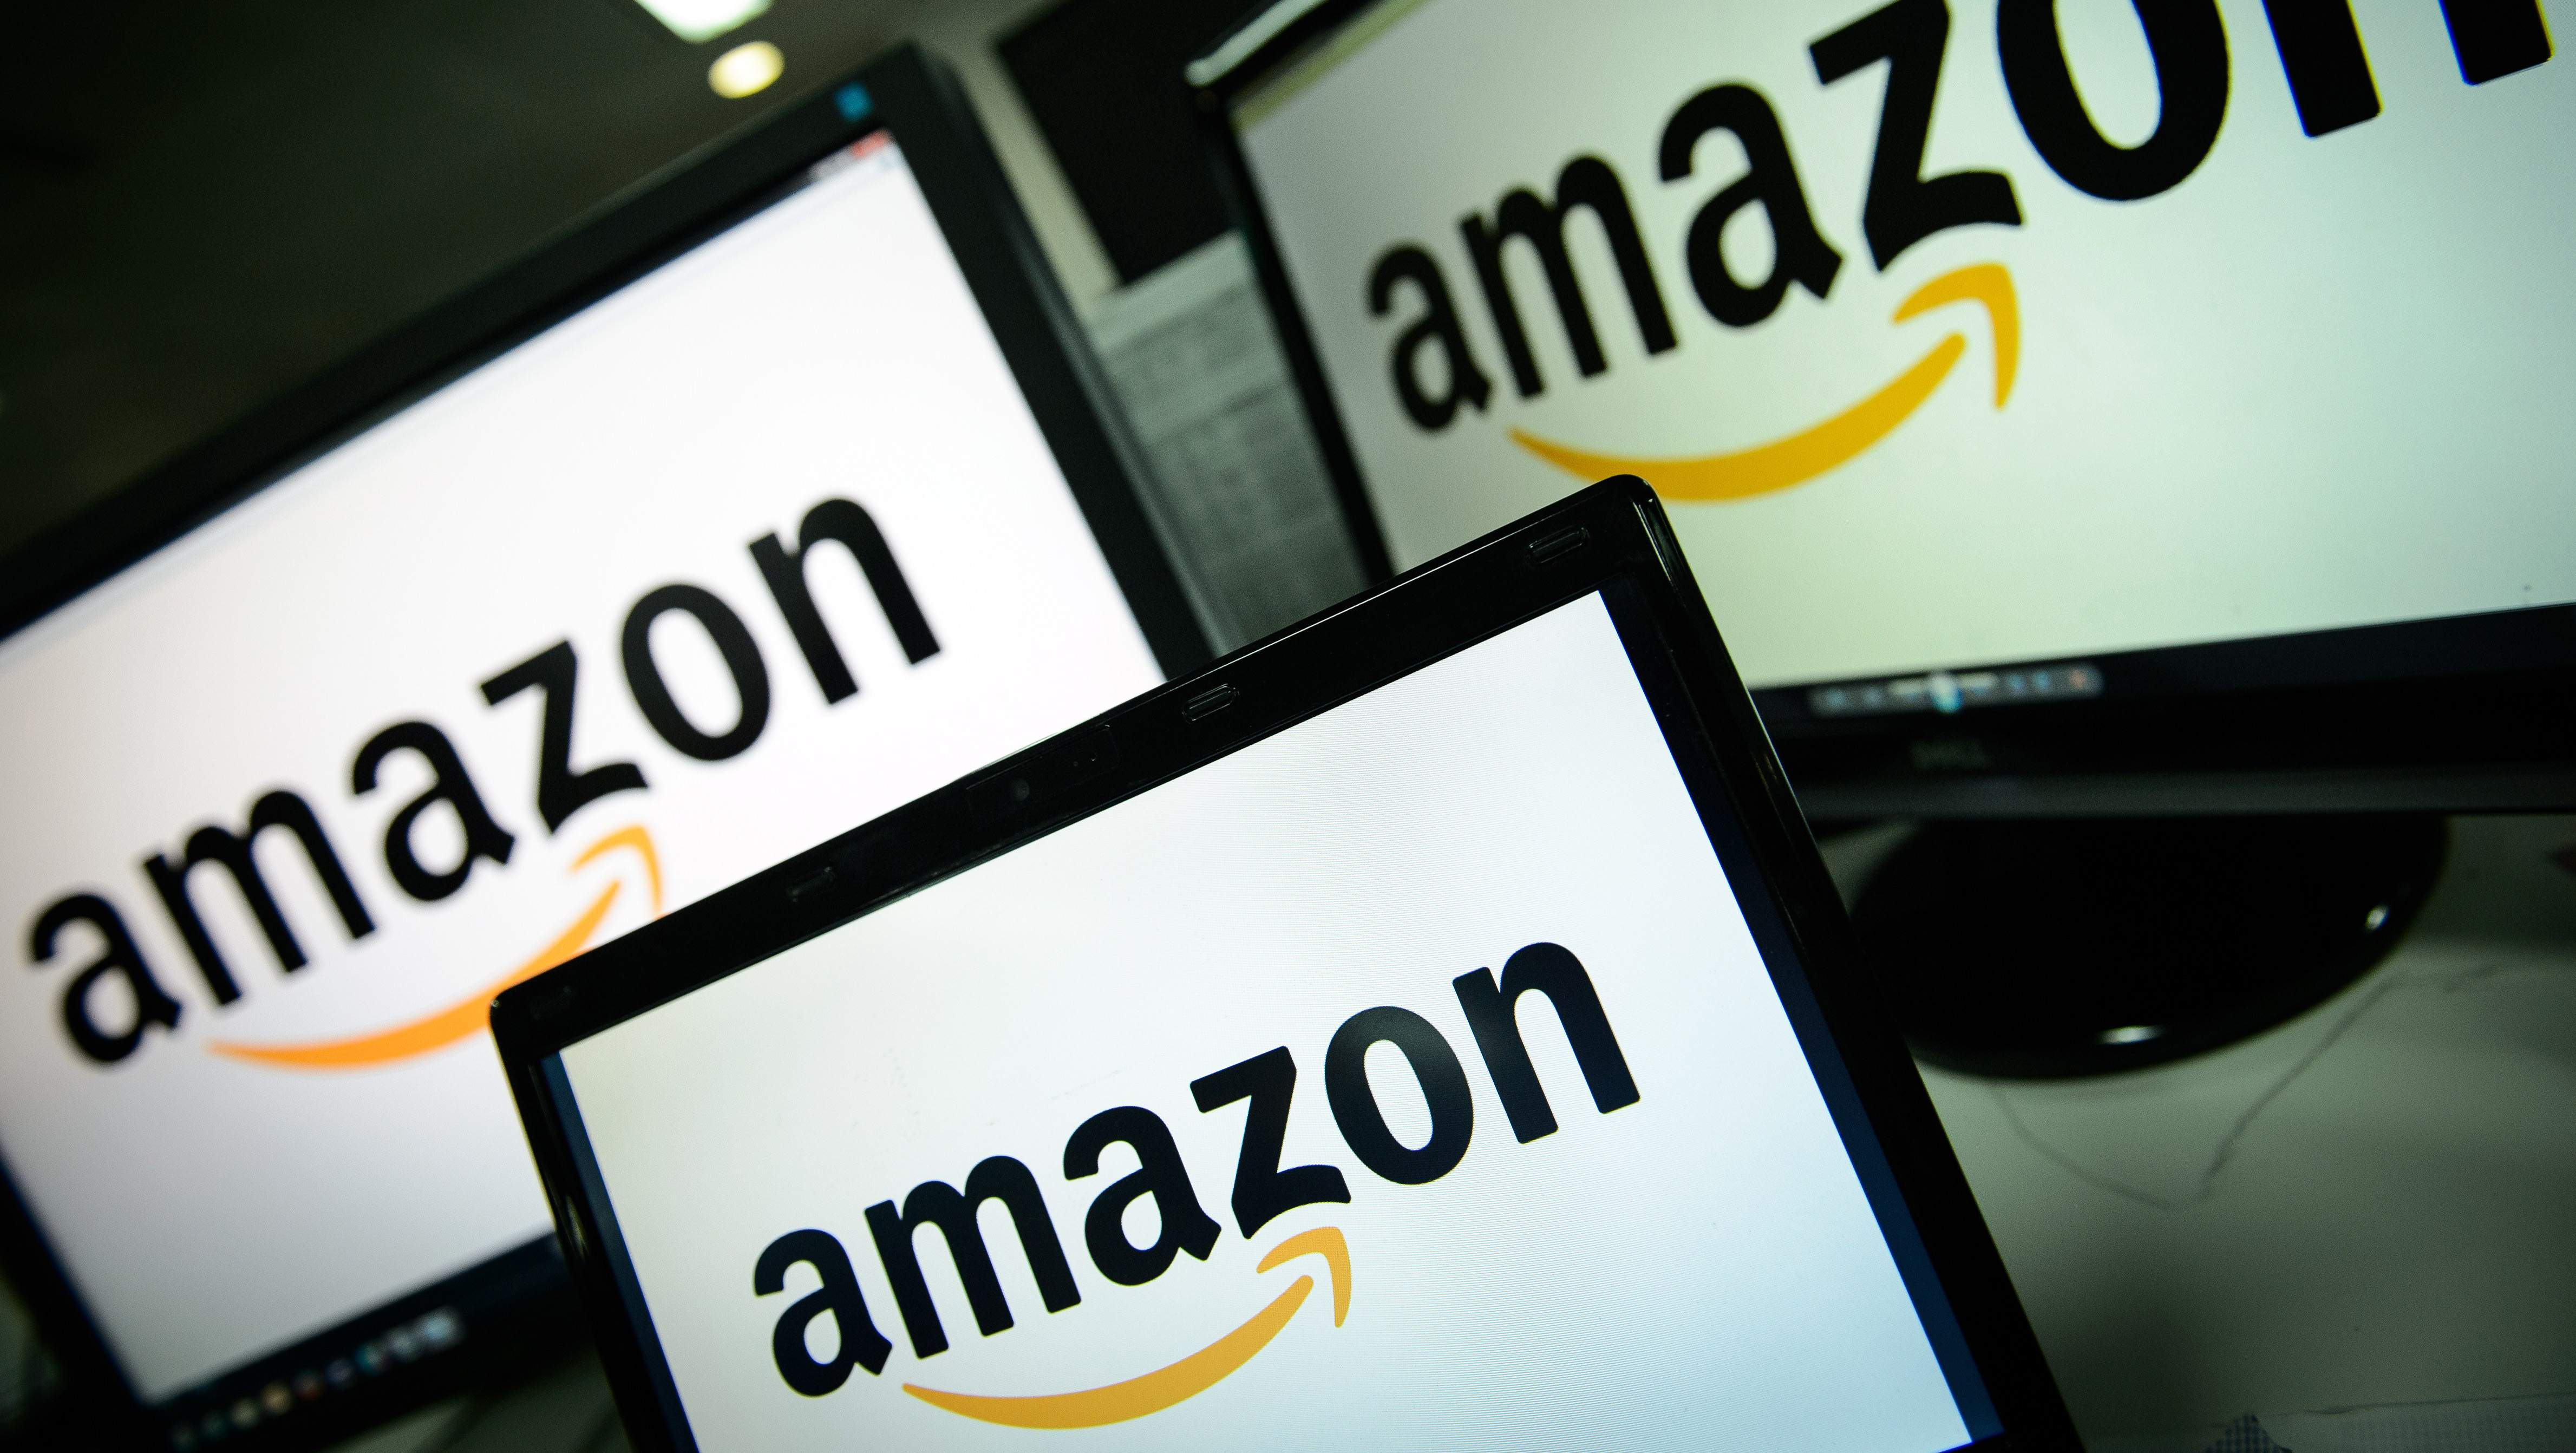 Semana del Black Friday de 2015 en Amazon: artículos, ofertas, promociones